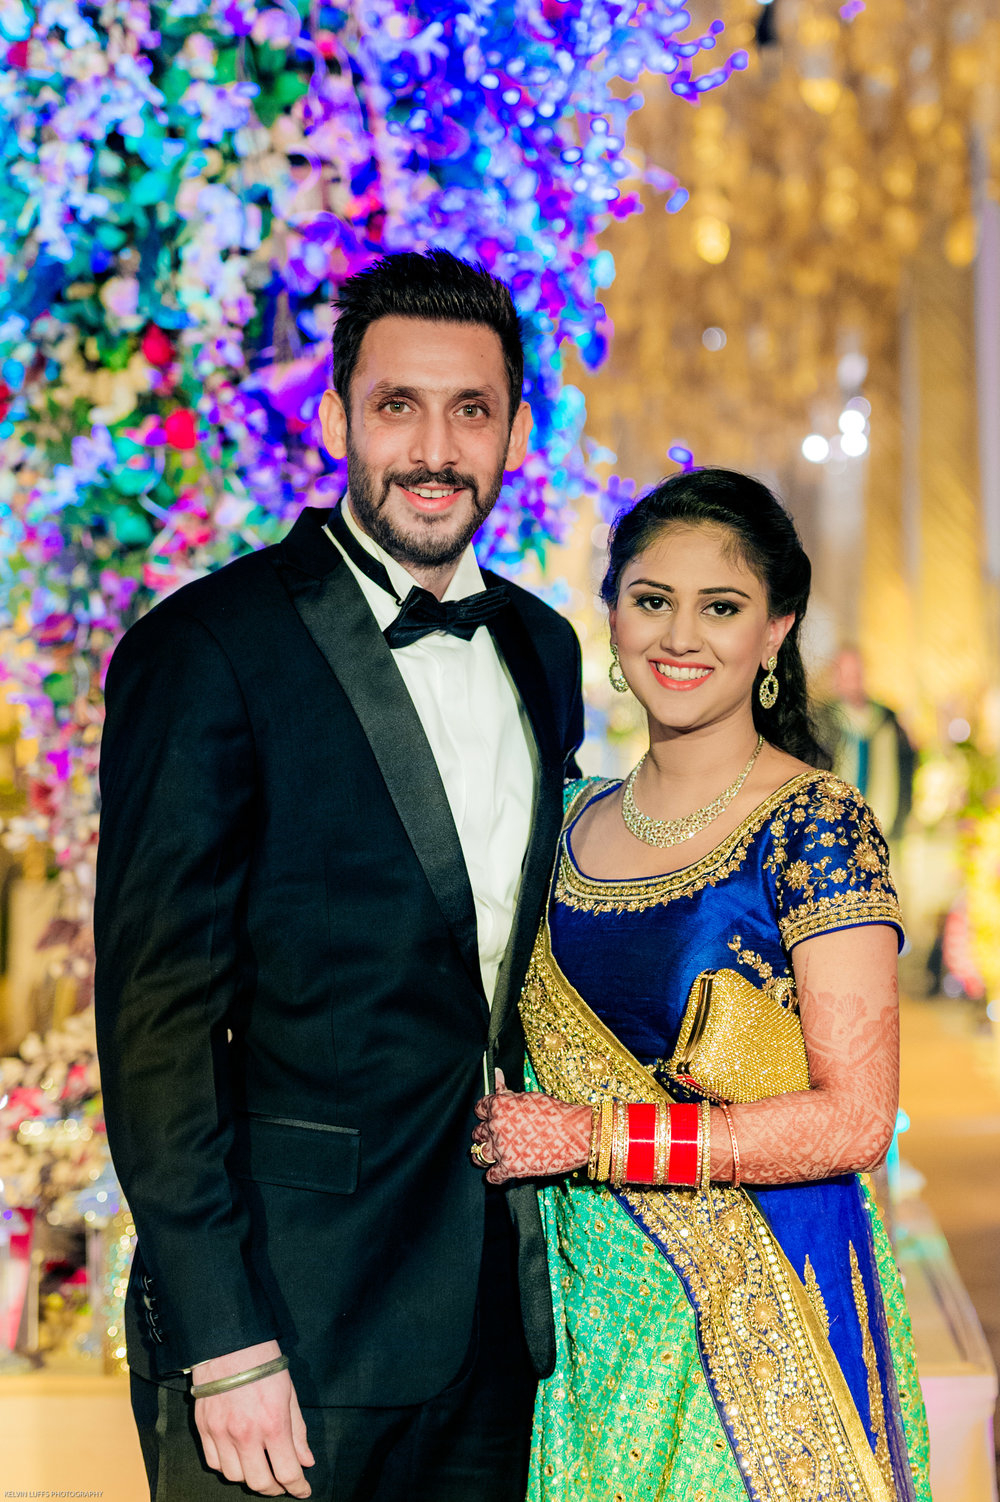 Honestly, I thought they were Bollywood actor and actresses. Such a good looking newly wed couple.